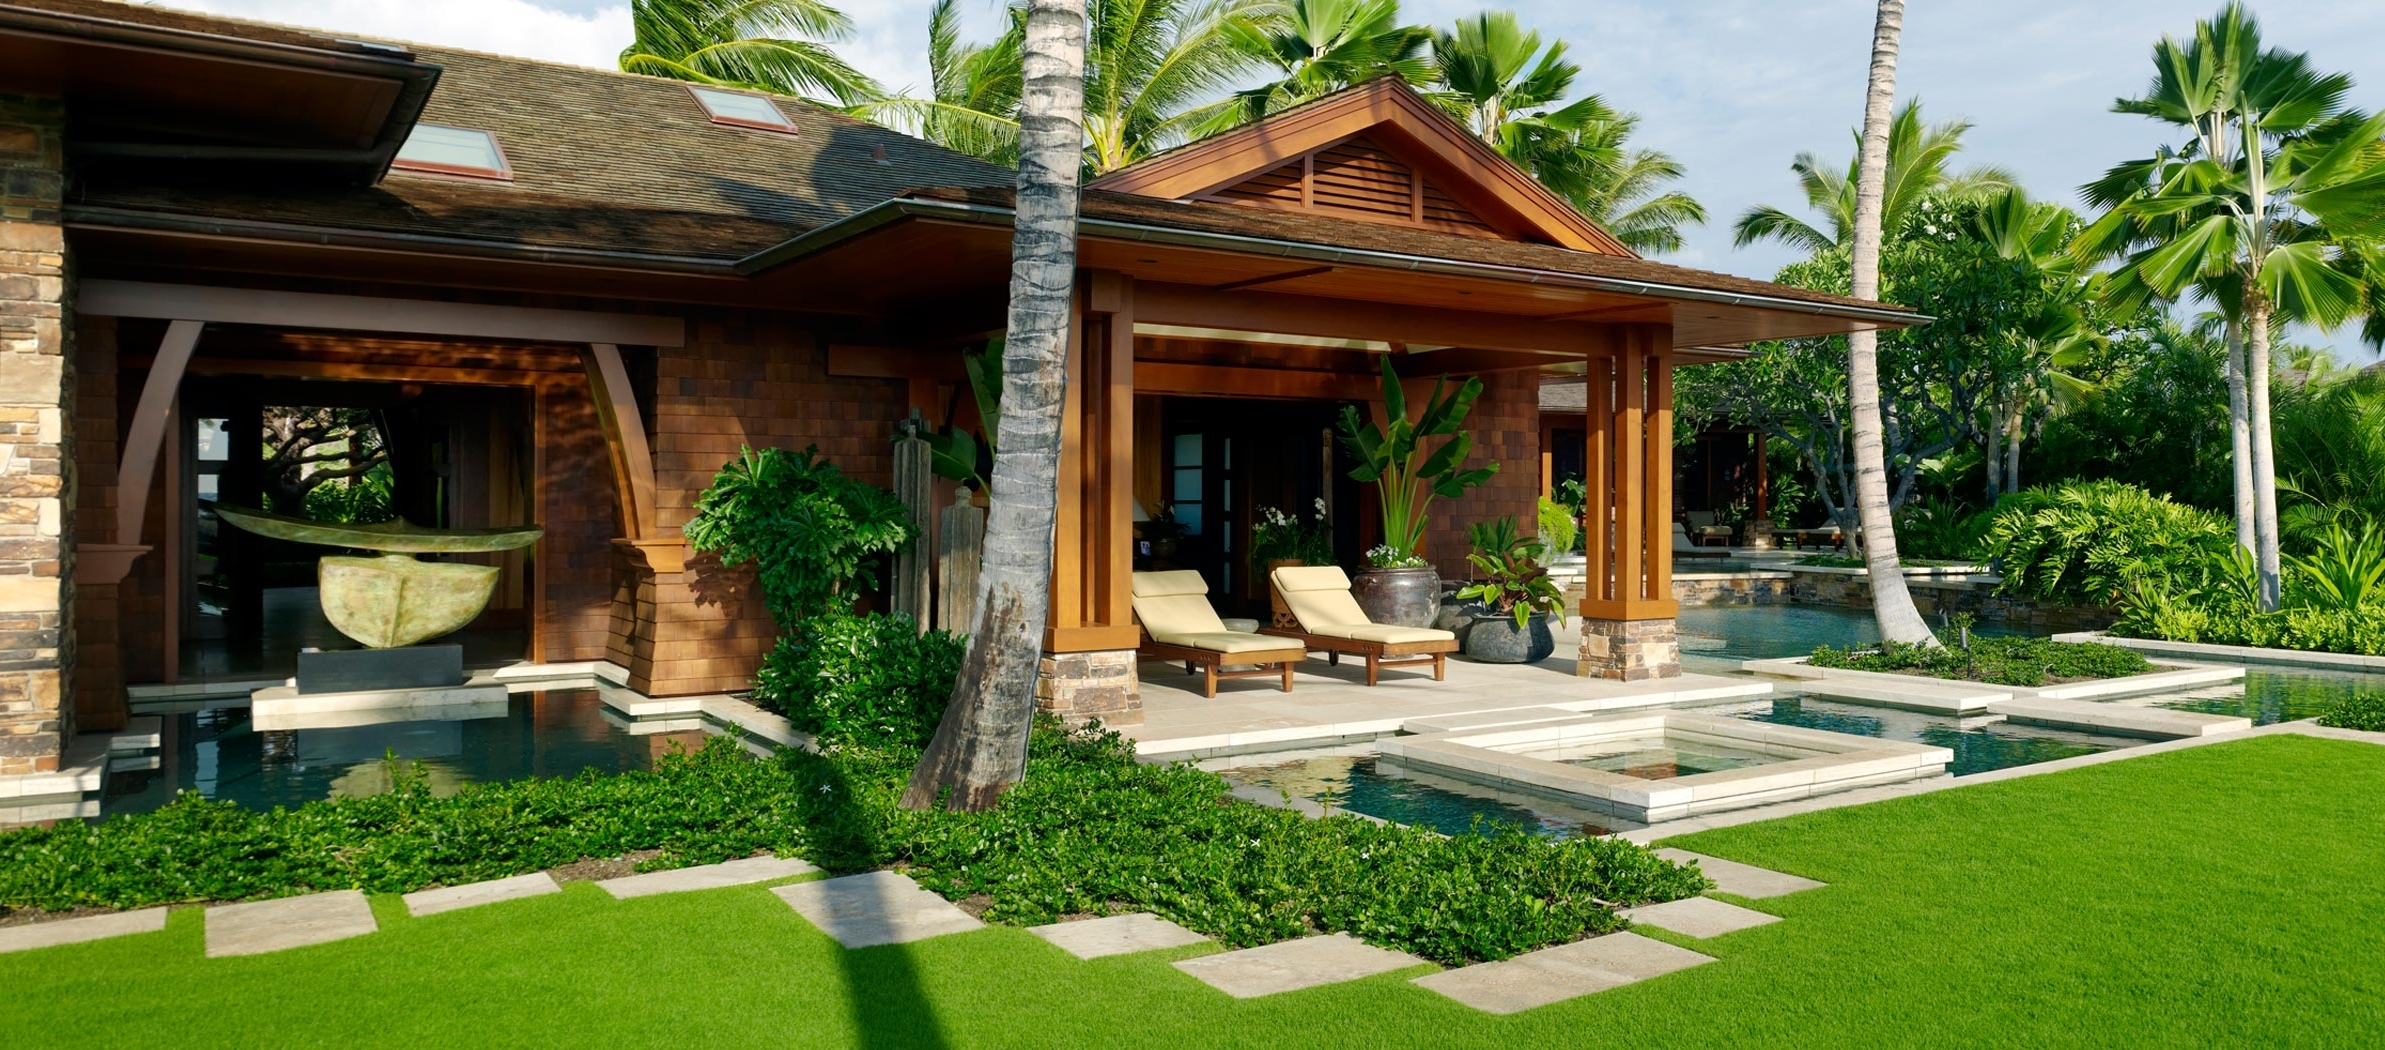 Featured Image of Deluxe Tropical Home Exterior